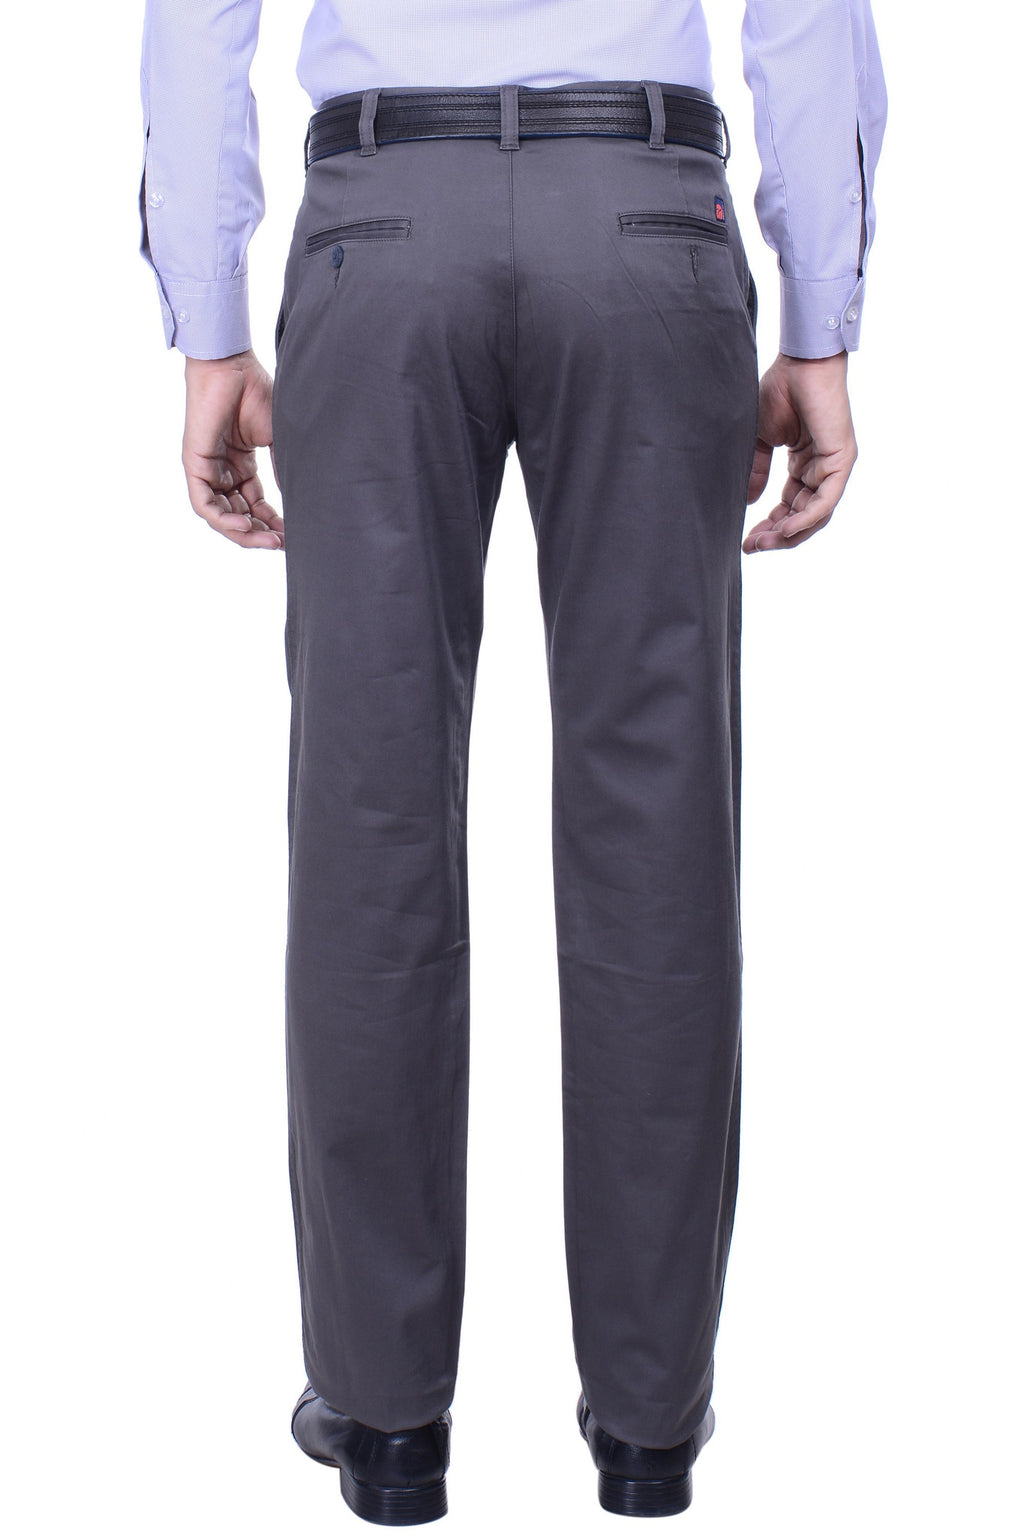 Hoffmen Slim Fit Flat Front  Men's Grey Trousers SSG3001